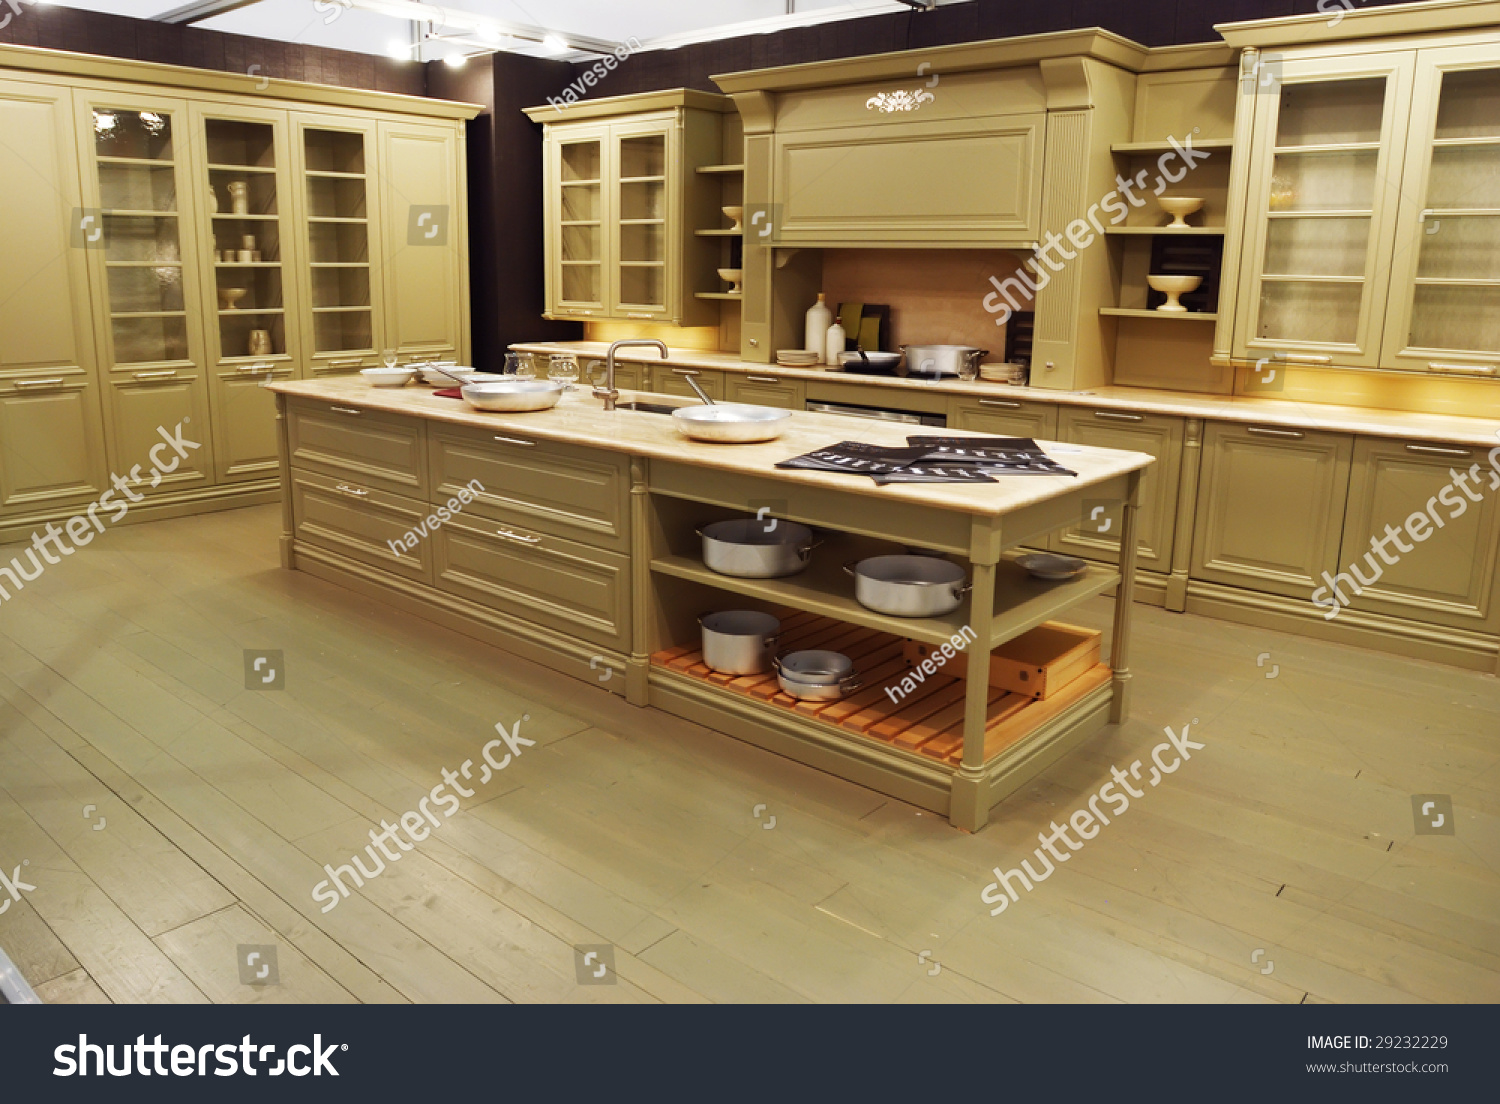 Old Fashioned Kitchen Classic Old Fashioned Kitchen Interior Stock Photo 29232229